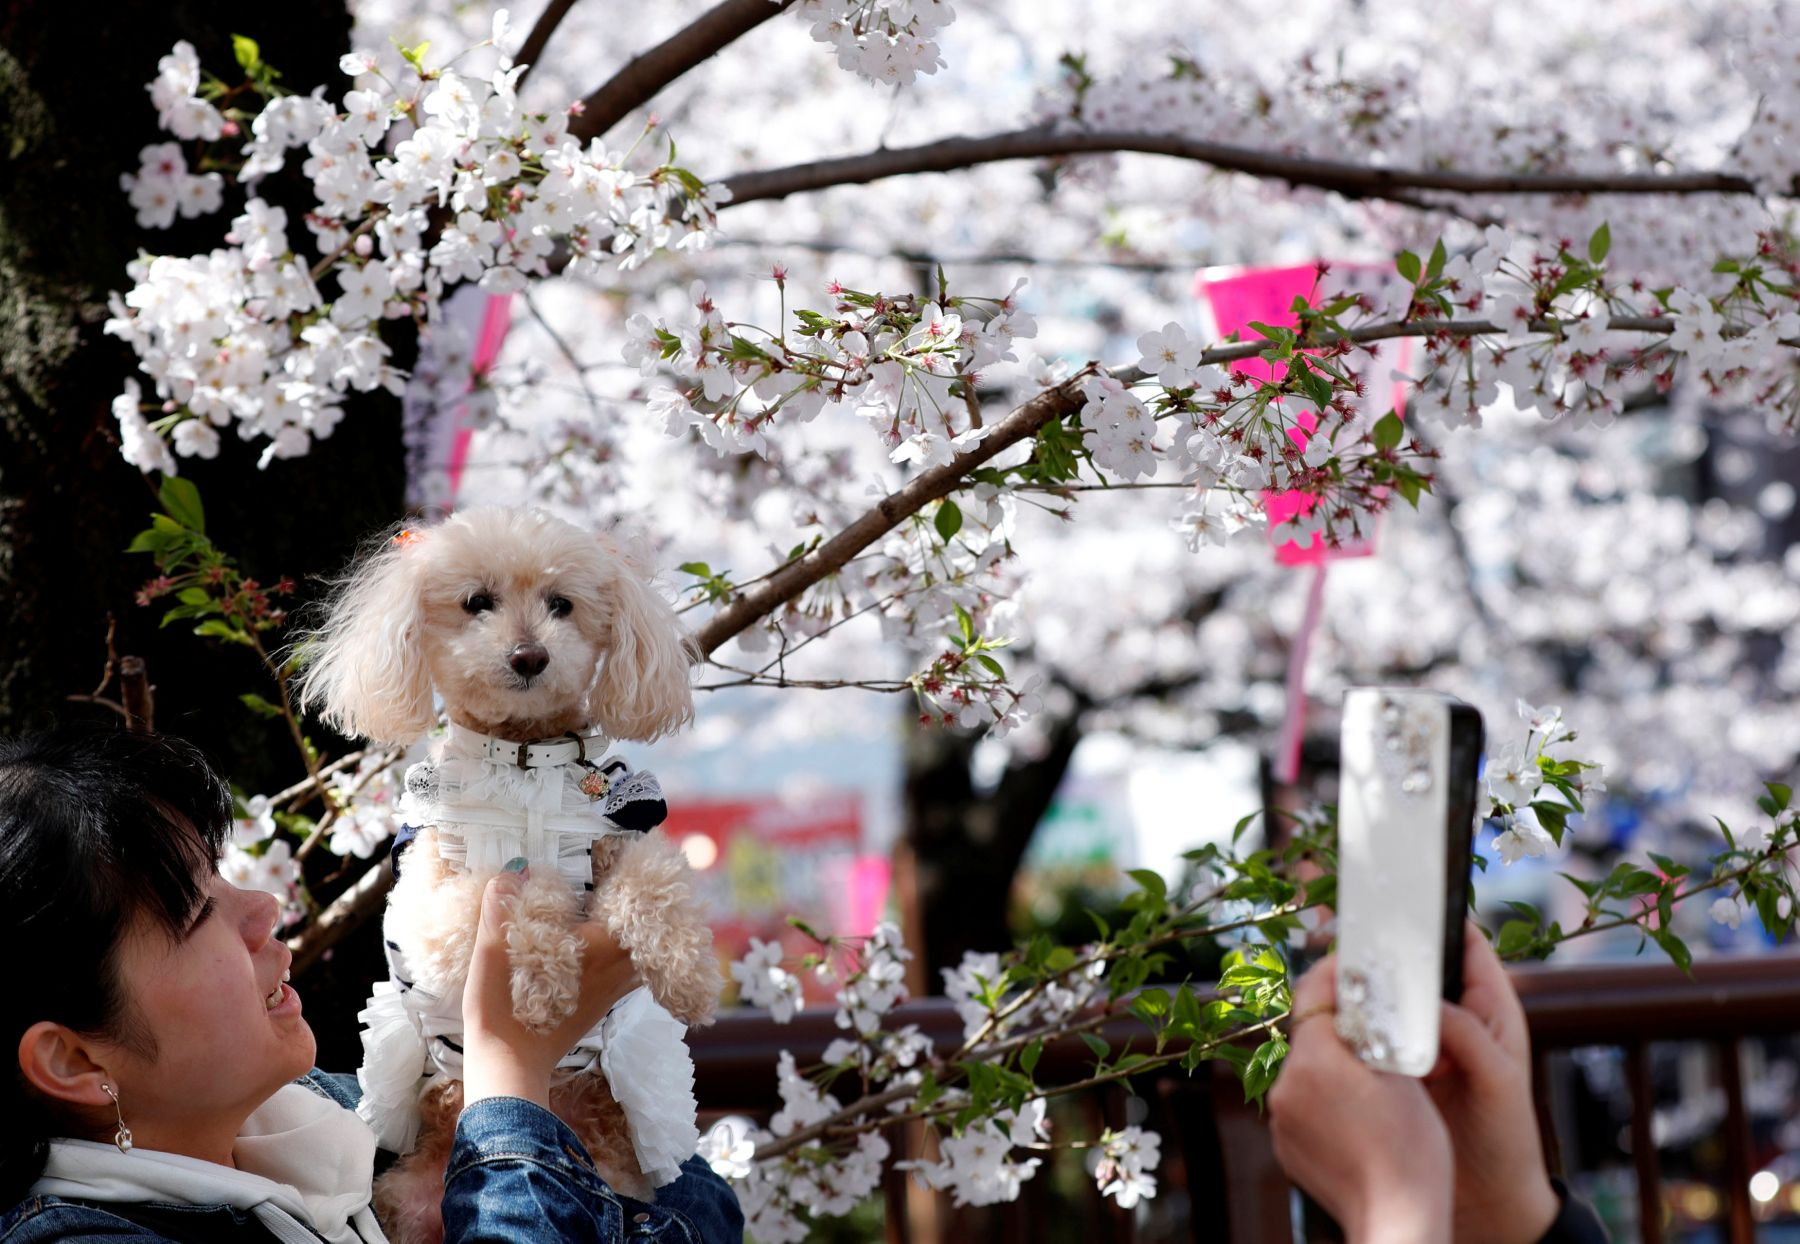 A woman poses with her pet dog in front of cherry blossoms in full bloom in Tokyo